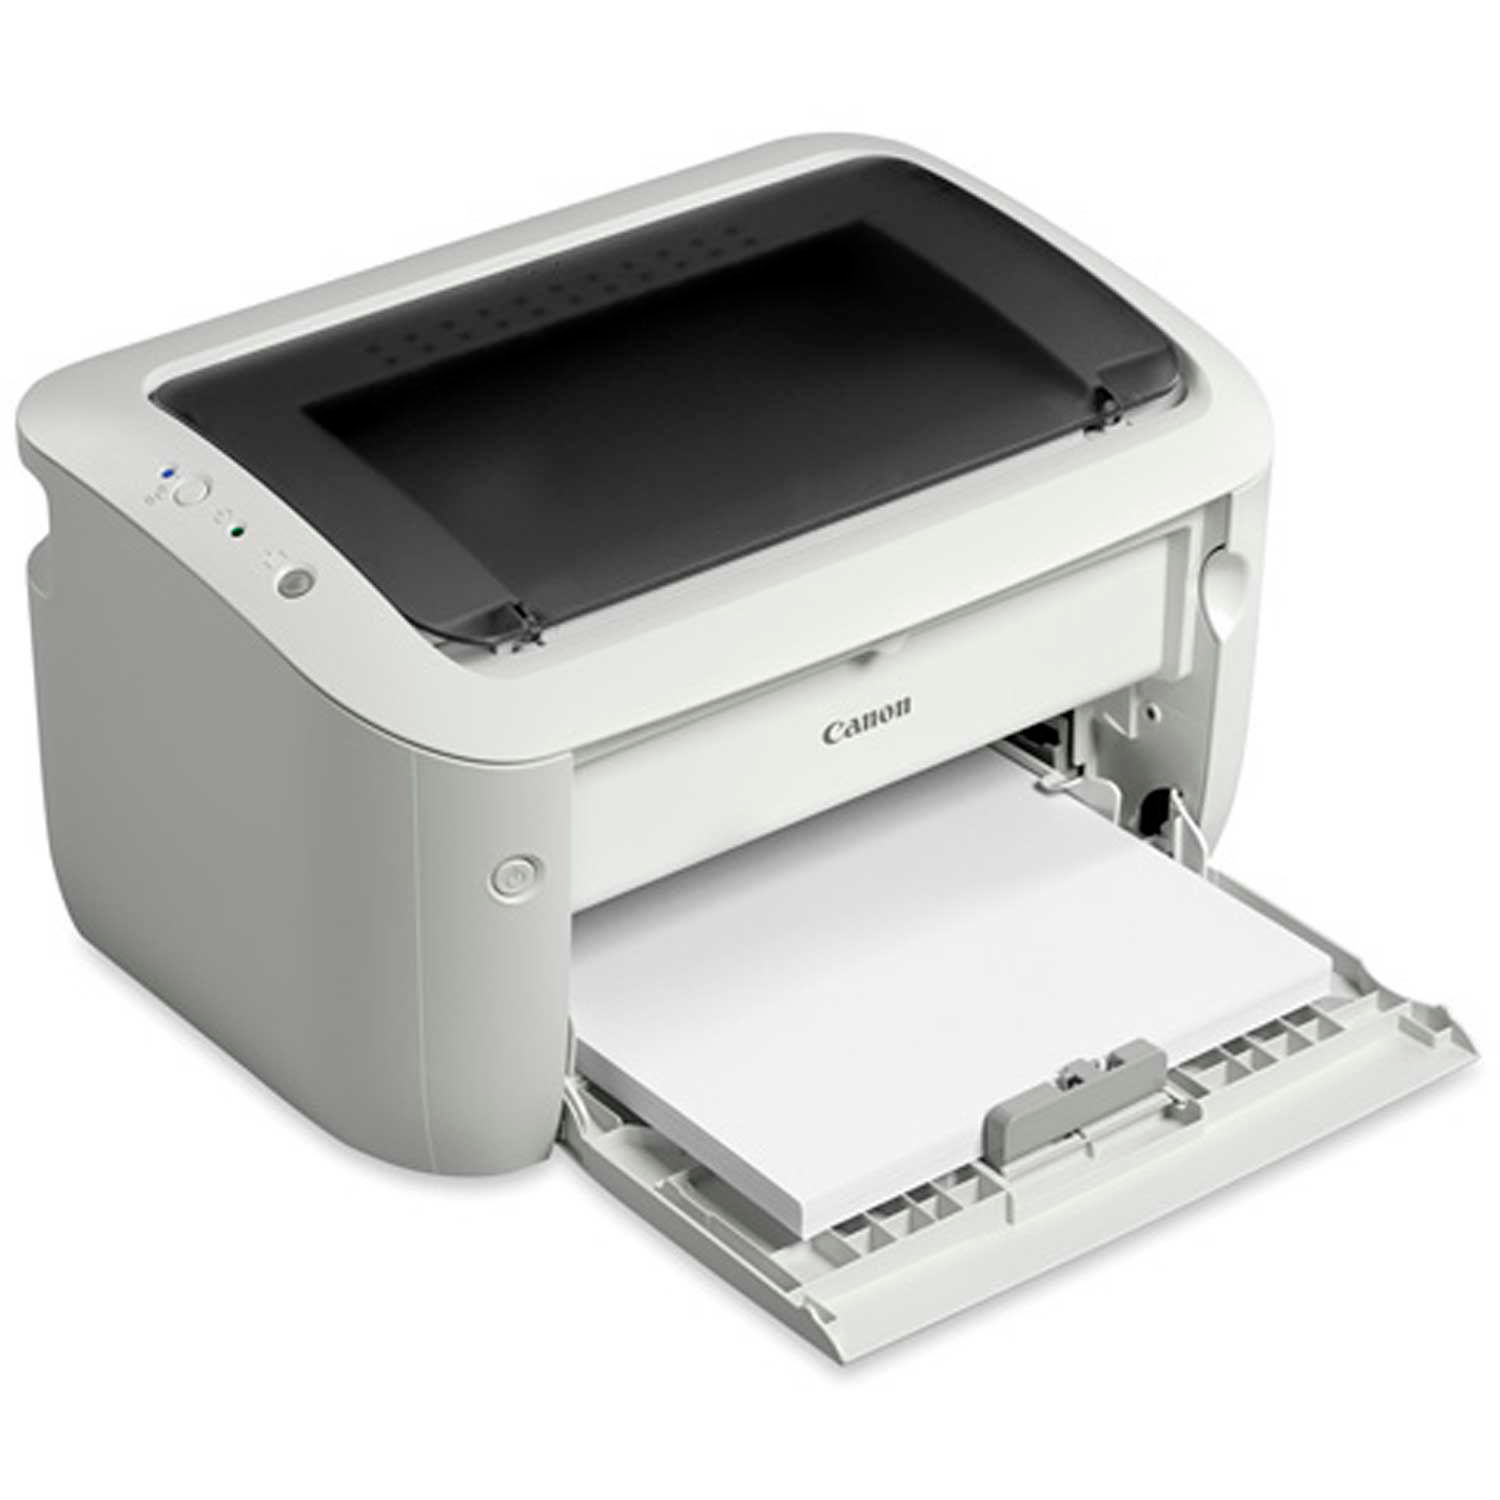 CANON LB5000 DRIVERS FOR MAC DOWNLOAD